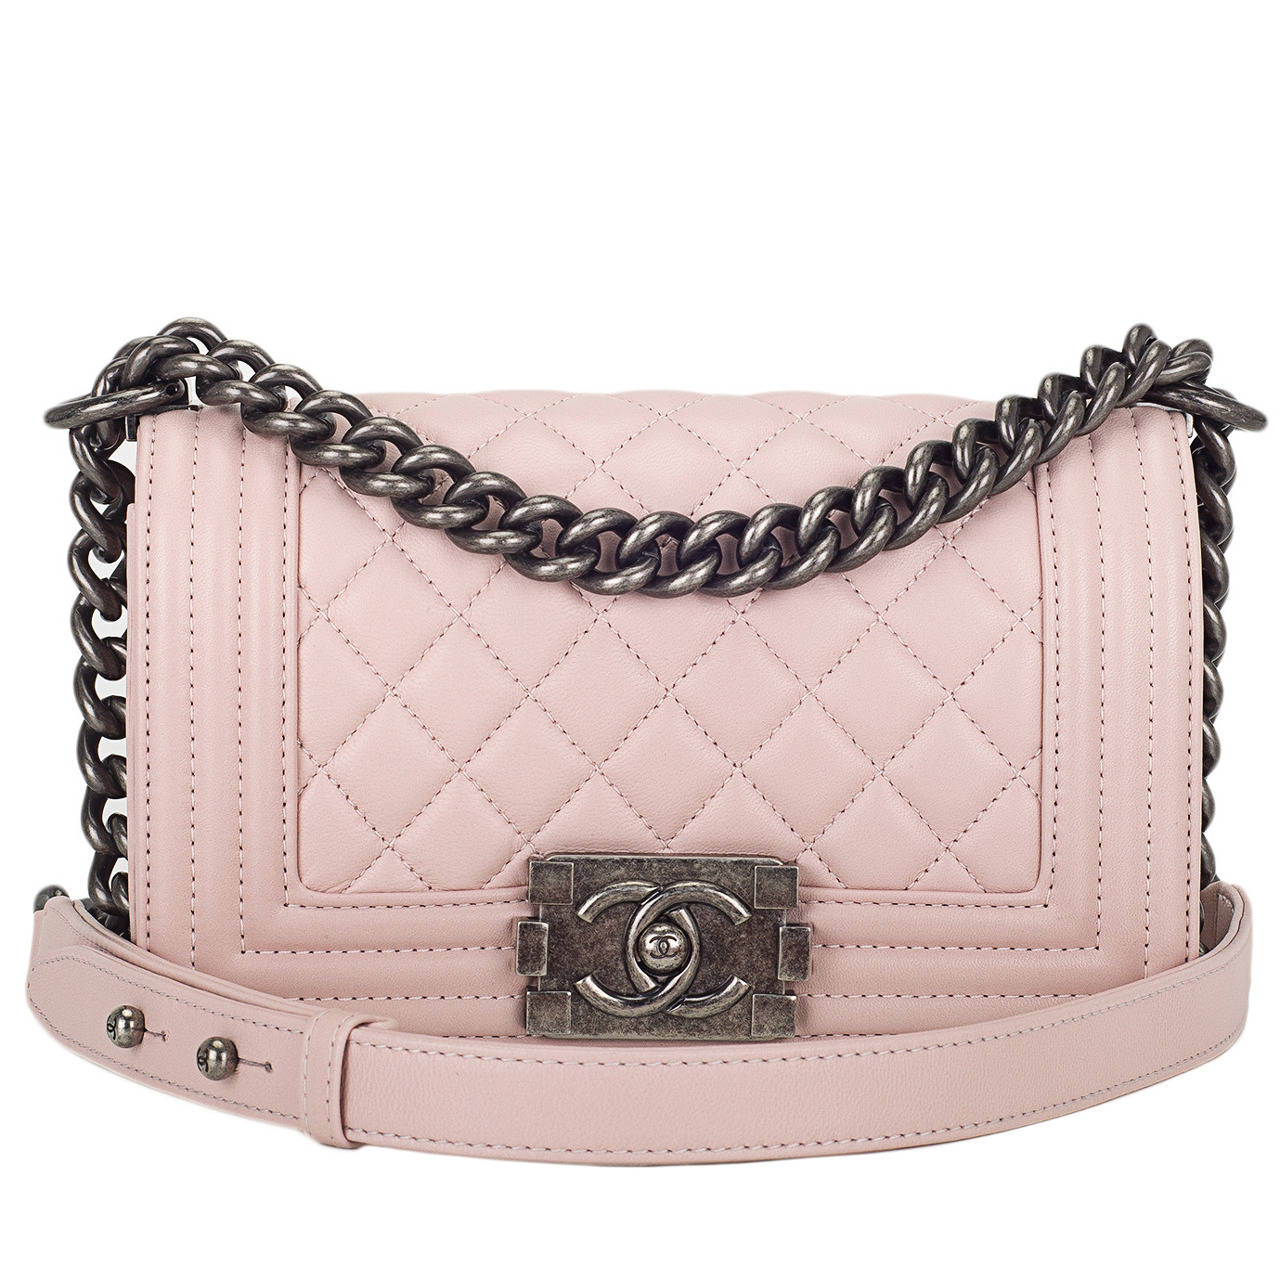 Chanel Baby Pink Quilted Lambskin Small Boy Bag At 1stdibs